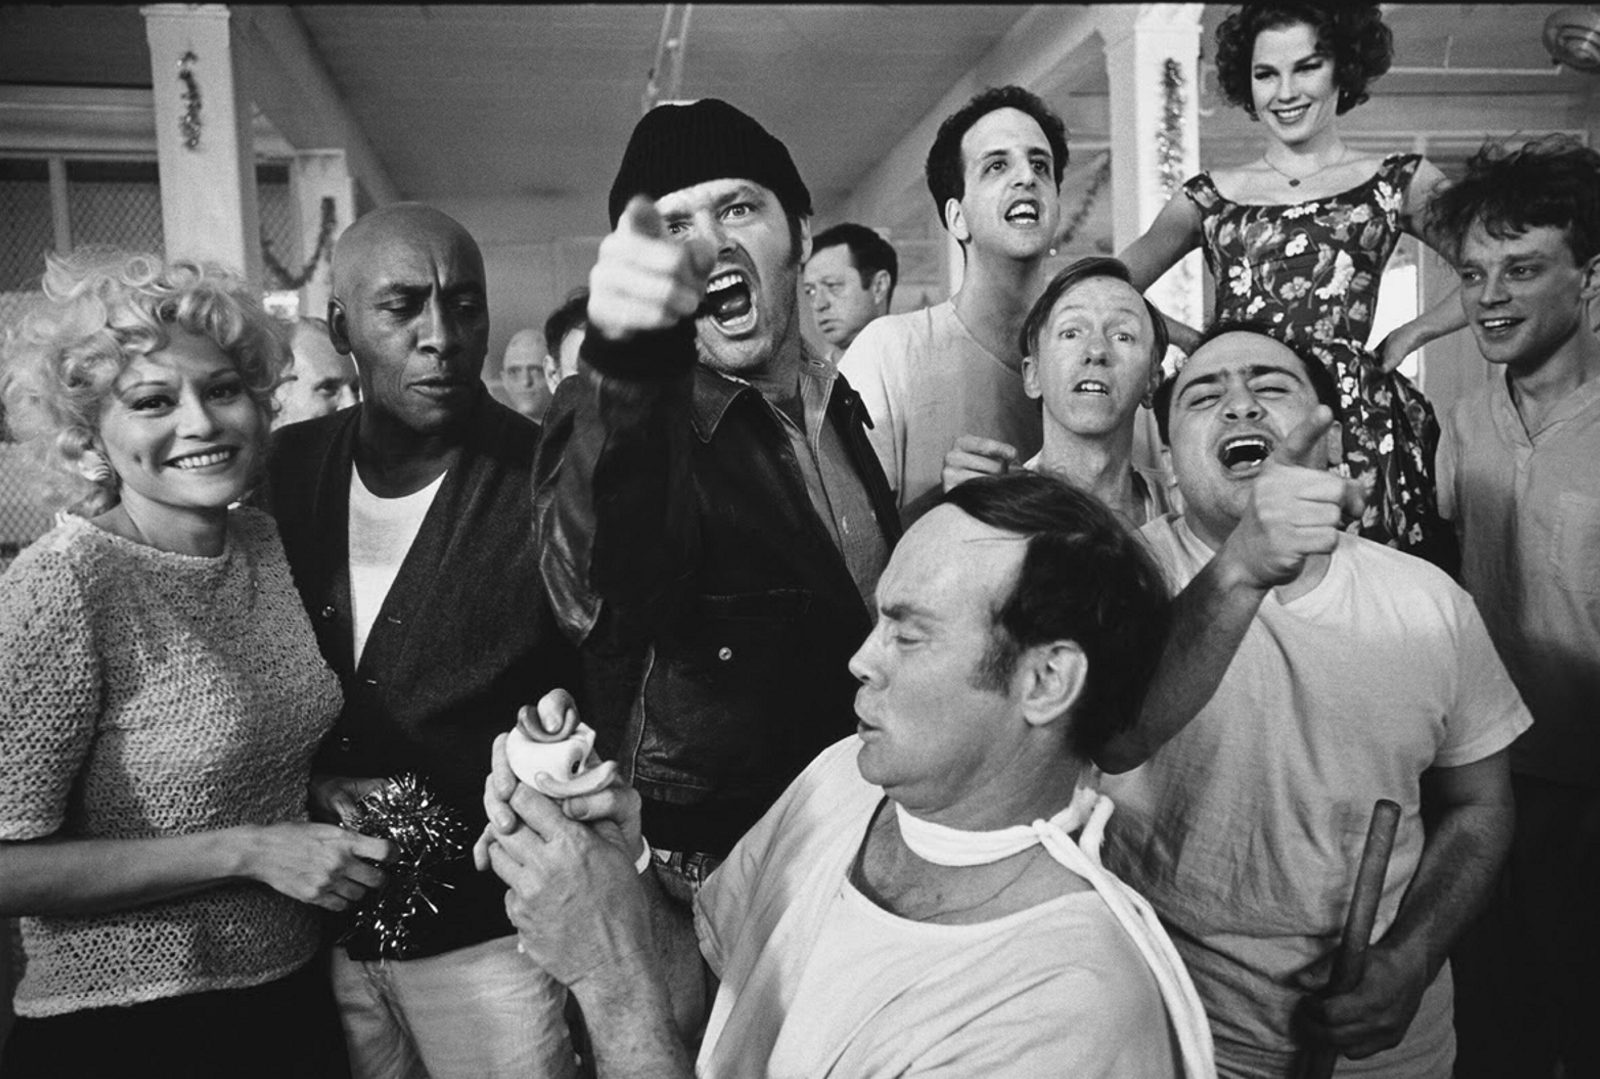 One-Flew-Over-the-Cuckoos-Nest-Cast-1974